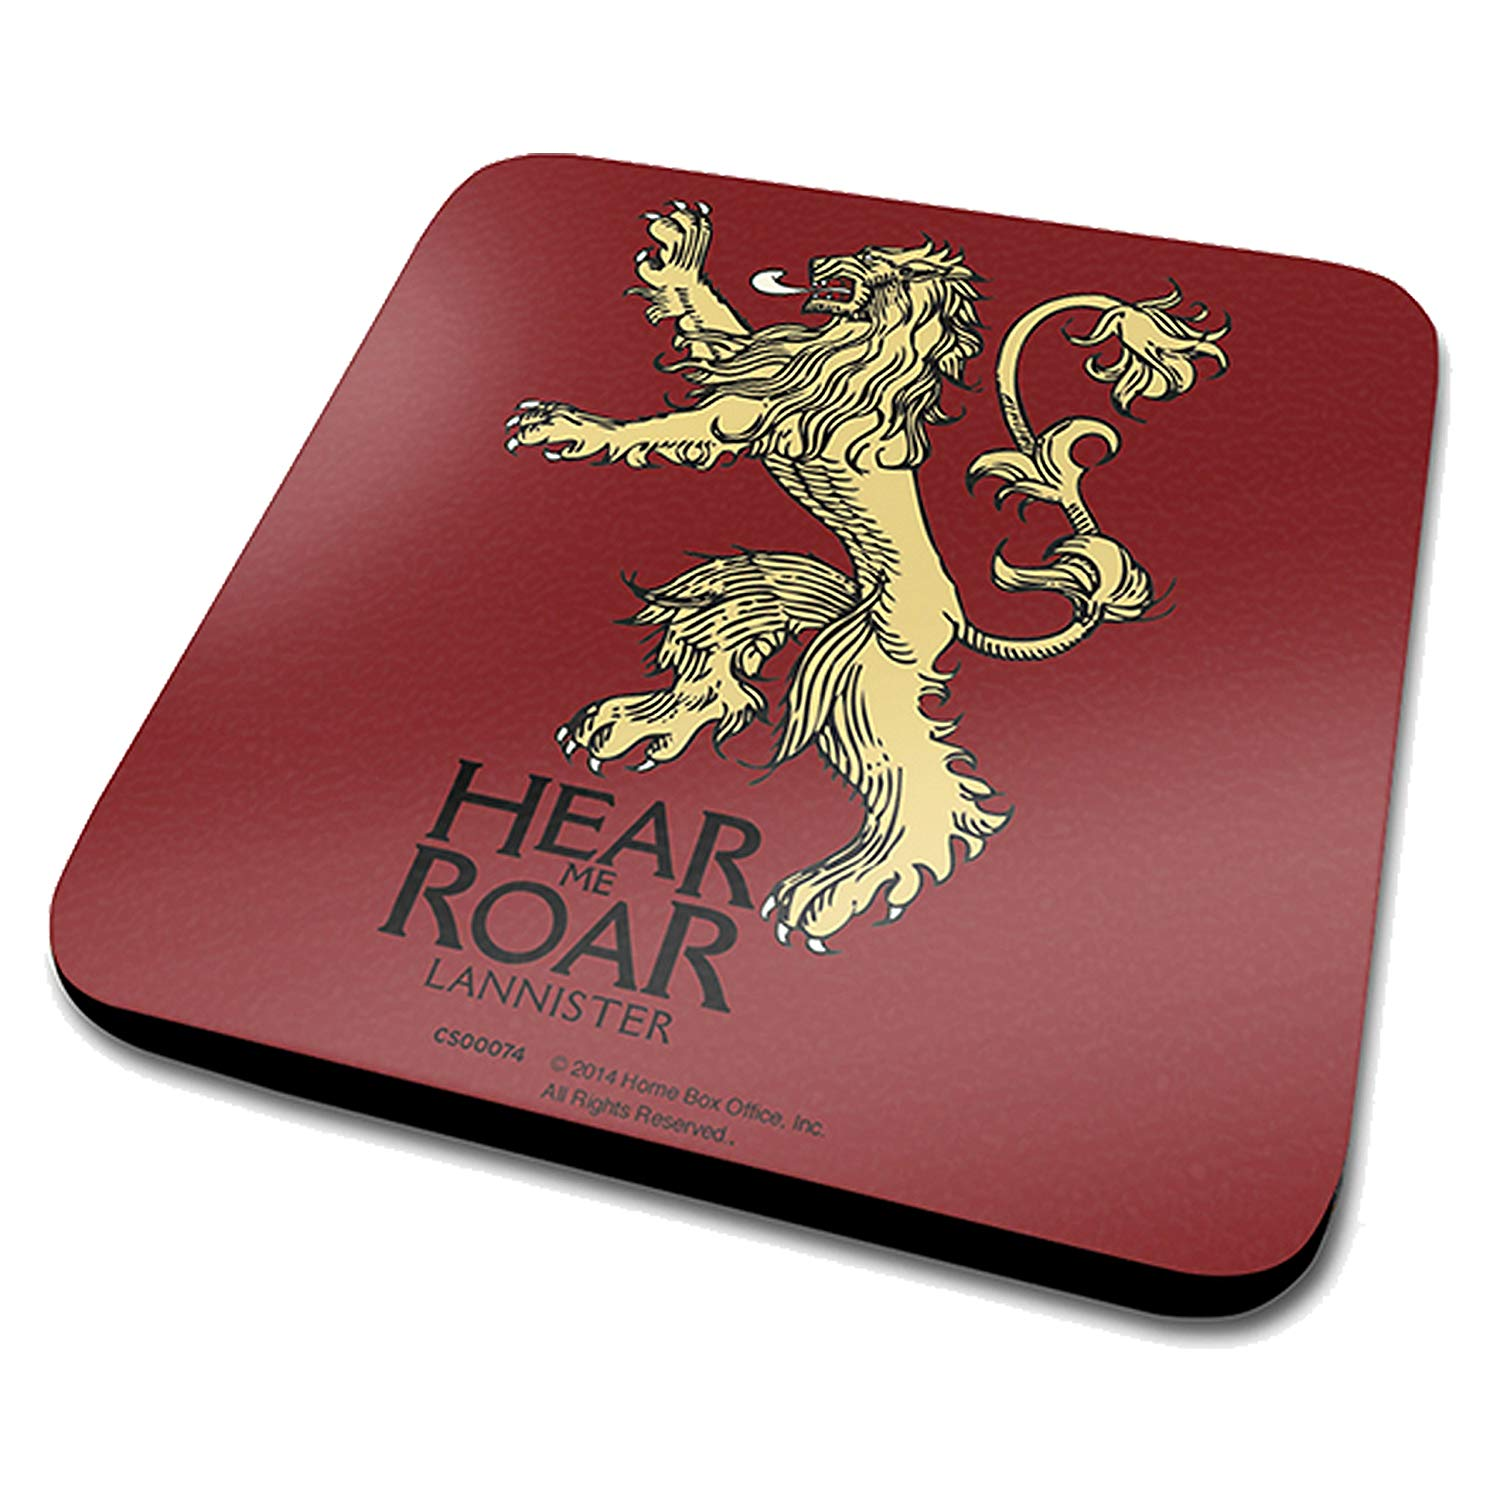 Sottobicchiere - Game Of Thrones - Lannister